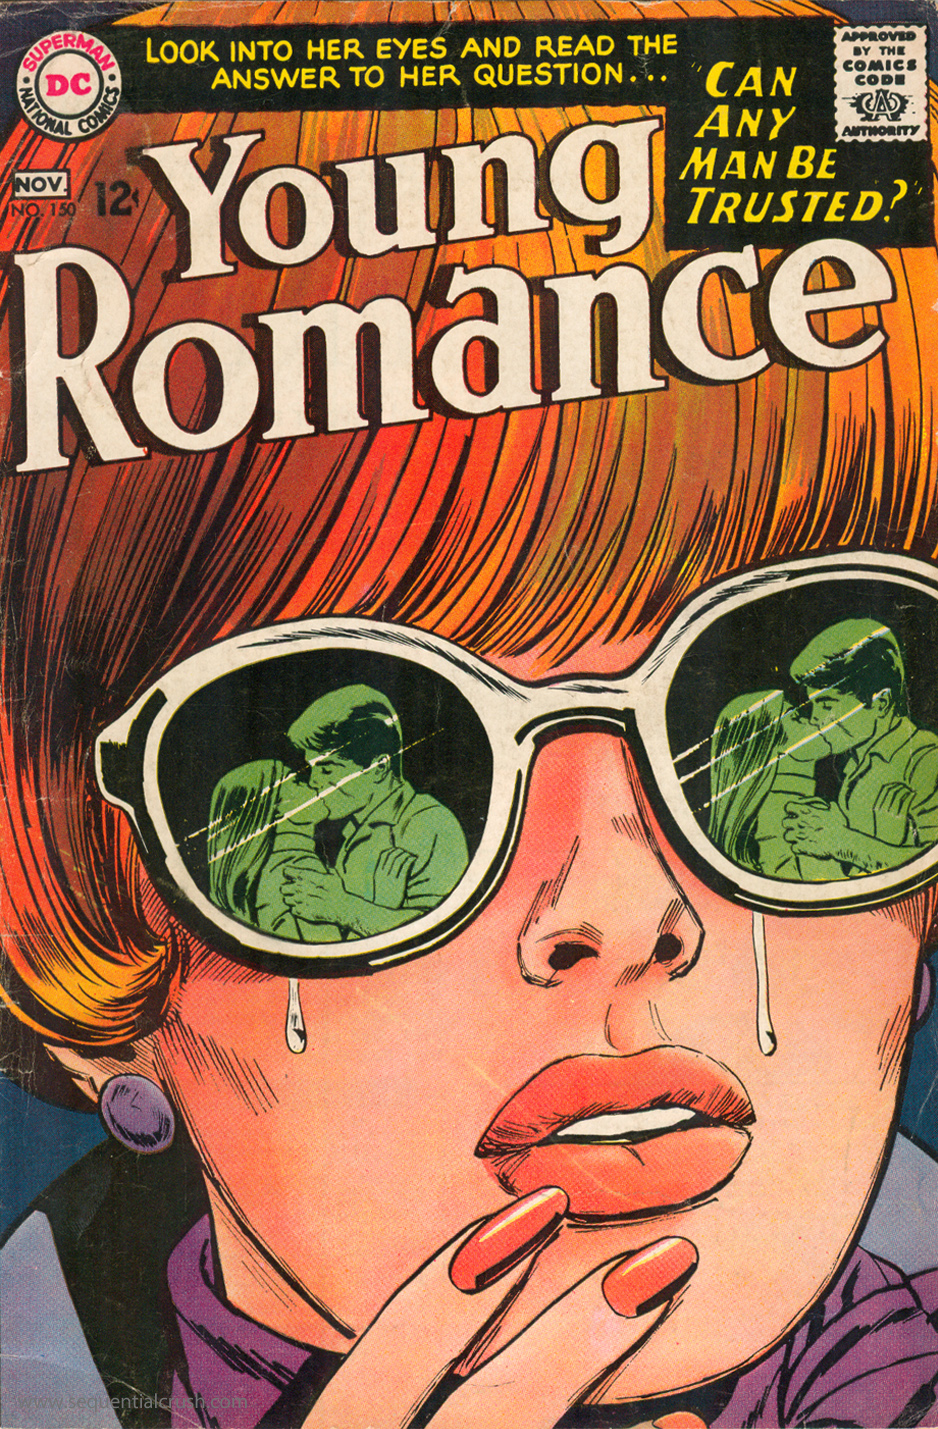 Young Romance #150 Cover Jay Scott Pike